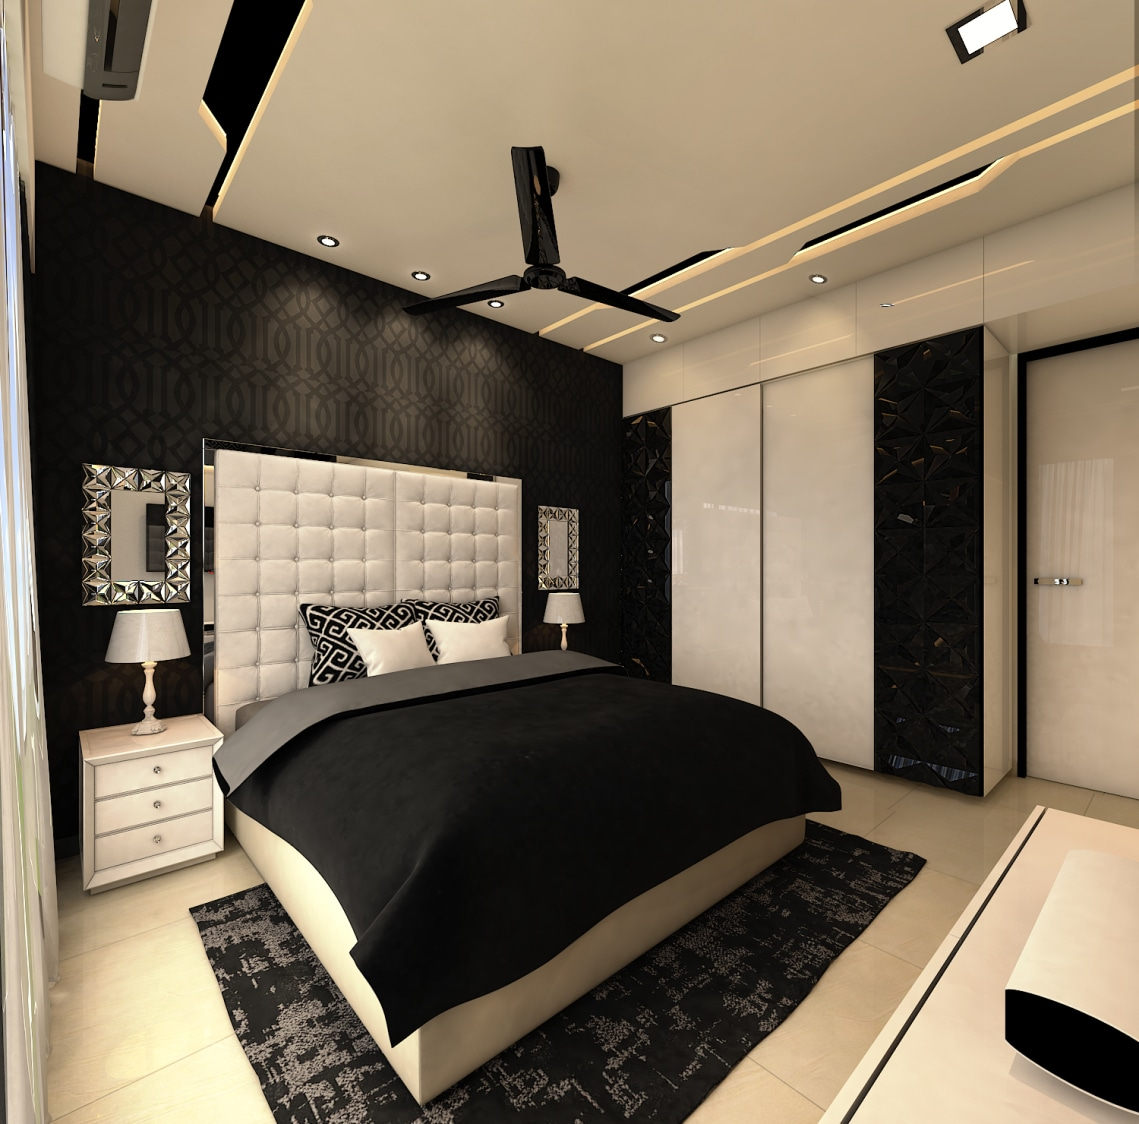 Bedroom With False Ceiling Wardrobe And Black Amp White